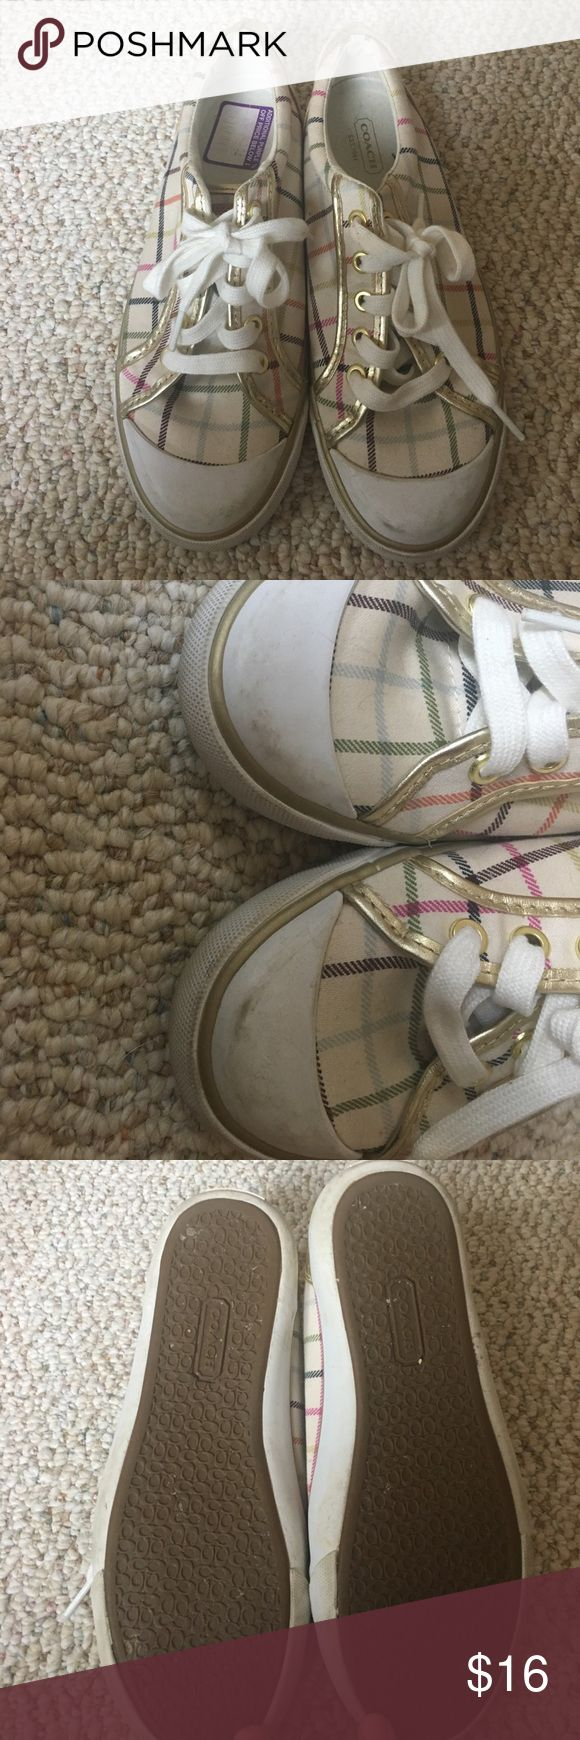 Coach tennis shoes Super cute coach tennis shoes. Just needs the toes polished and they would look brand new. Only worn a handful of times. Coach Shoes Sneakers